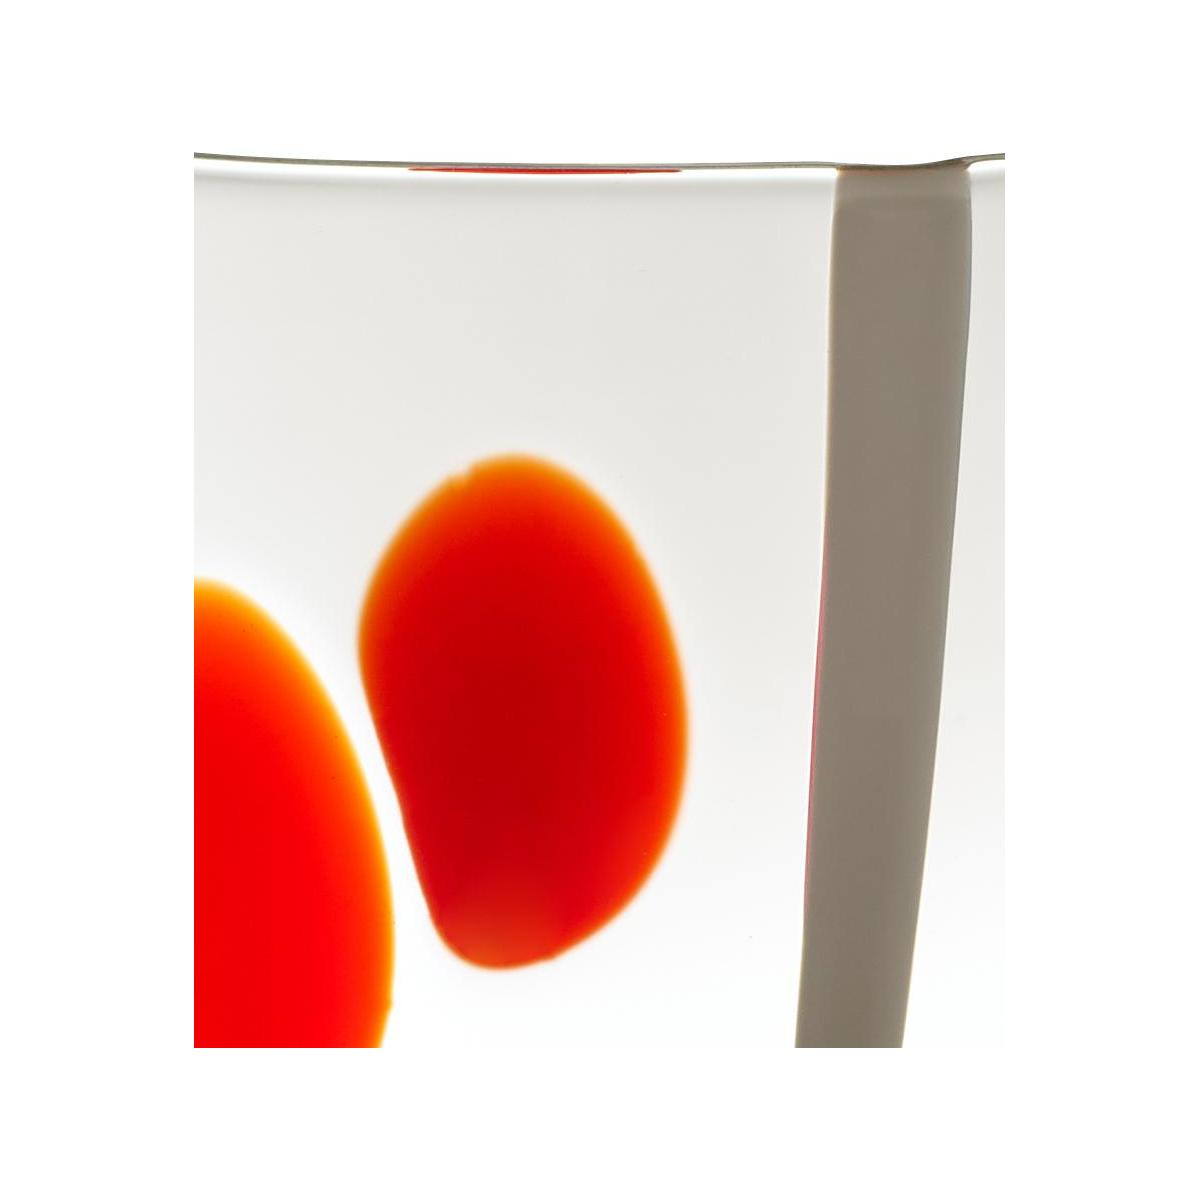 Red and White Patterned Small Glass Tumbler n°2